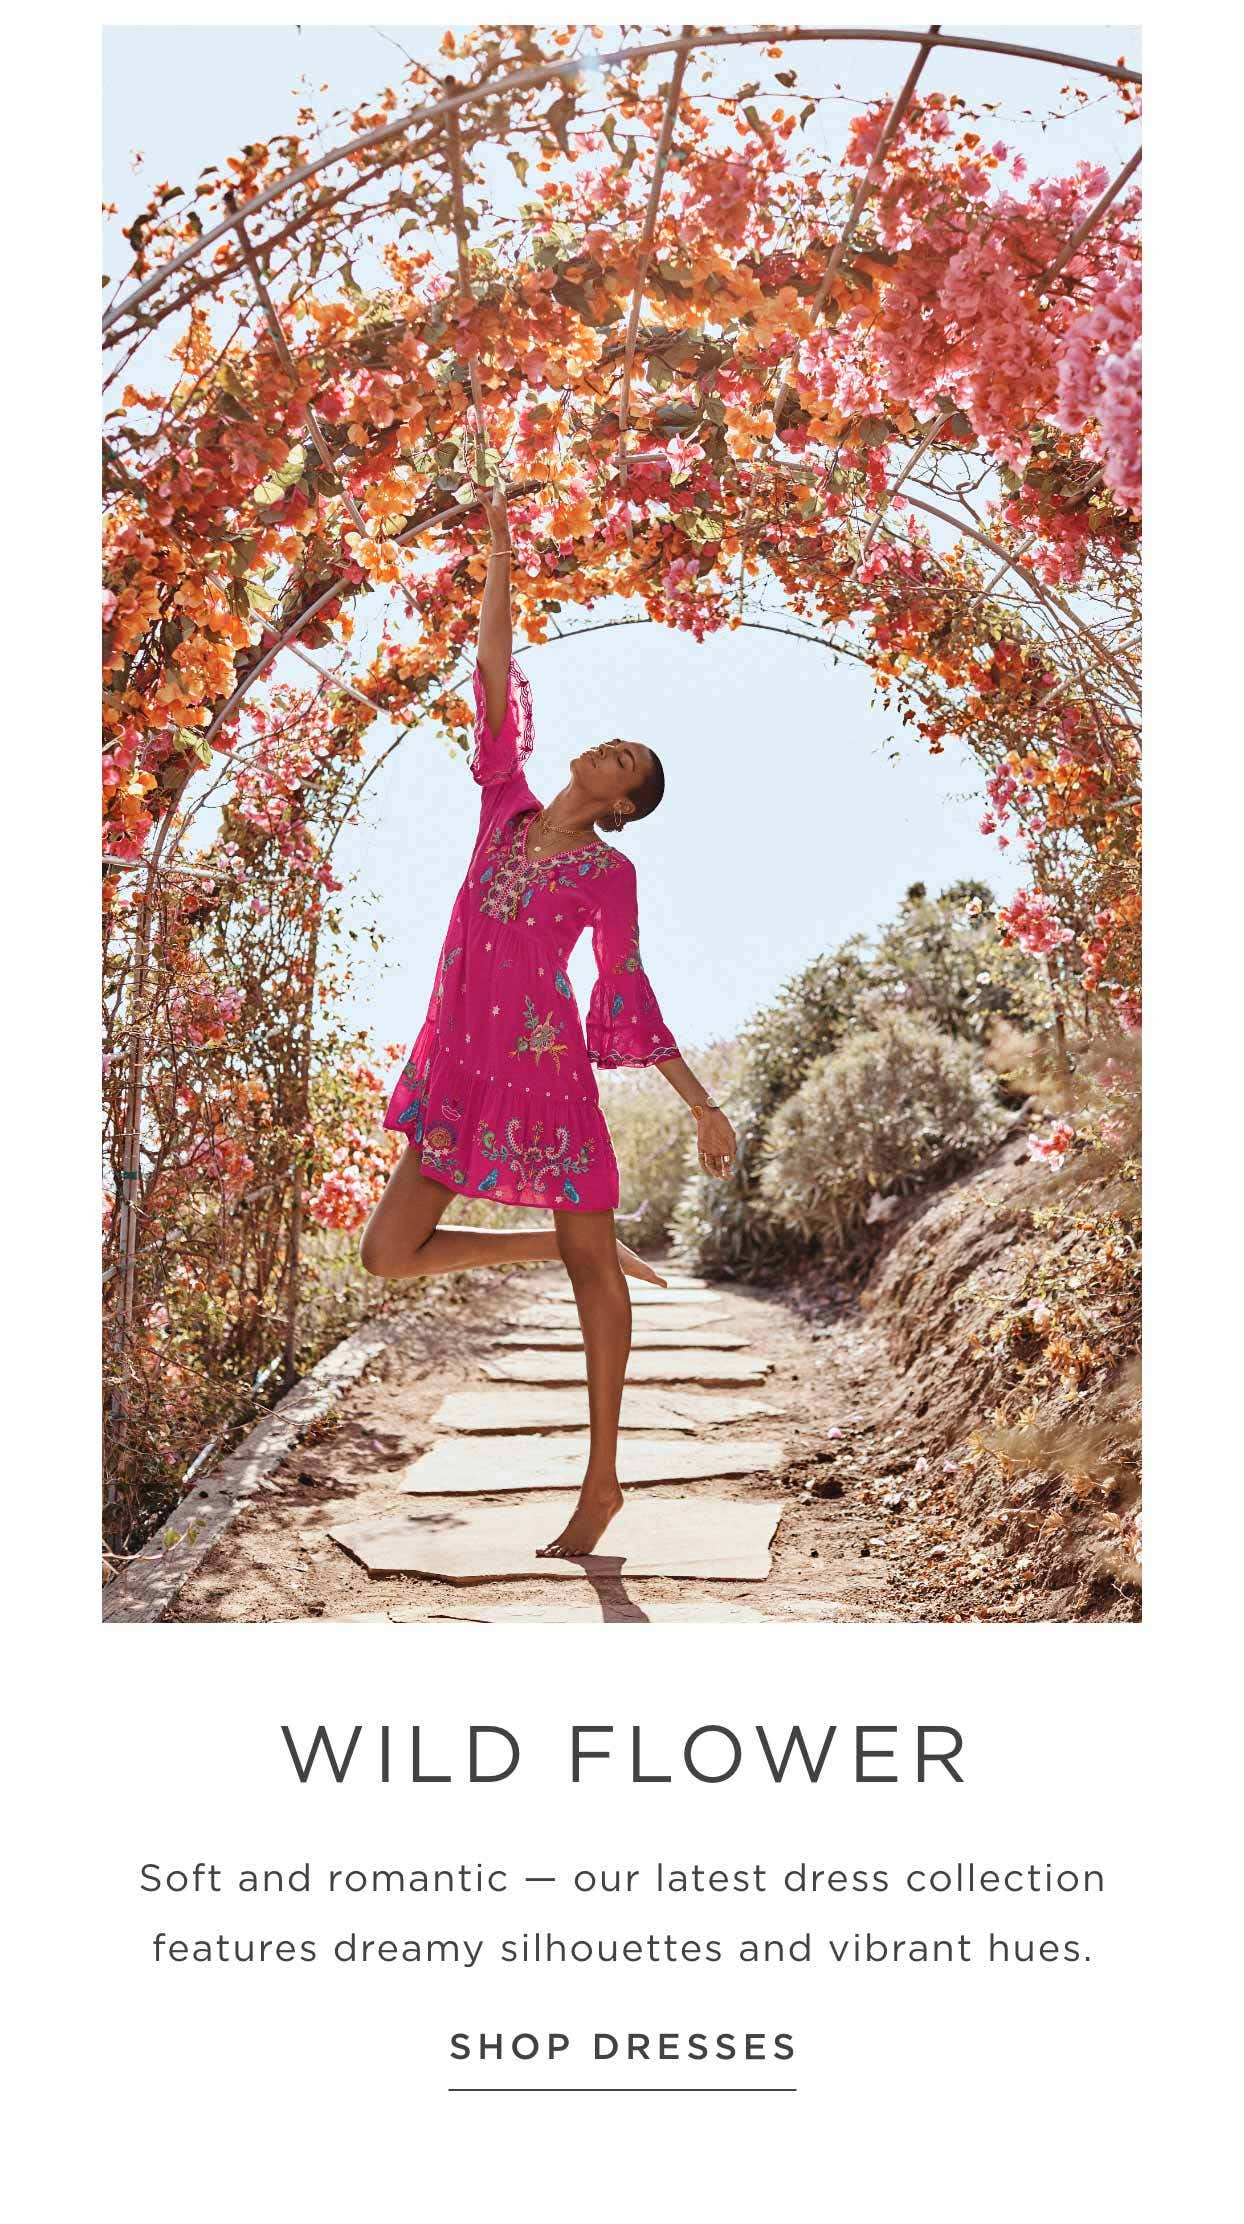 Wild Flower - Soft and romantic — our latest dress collection features dreamy silhouettes and vibrant hues - Shop Dresses